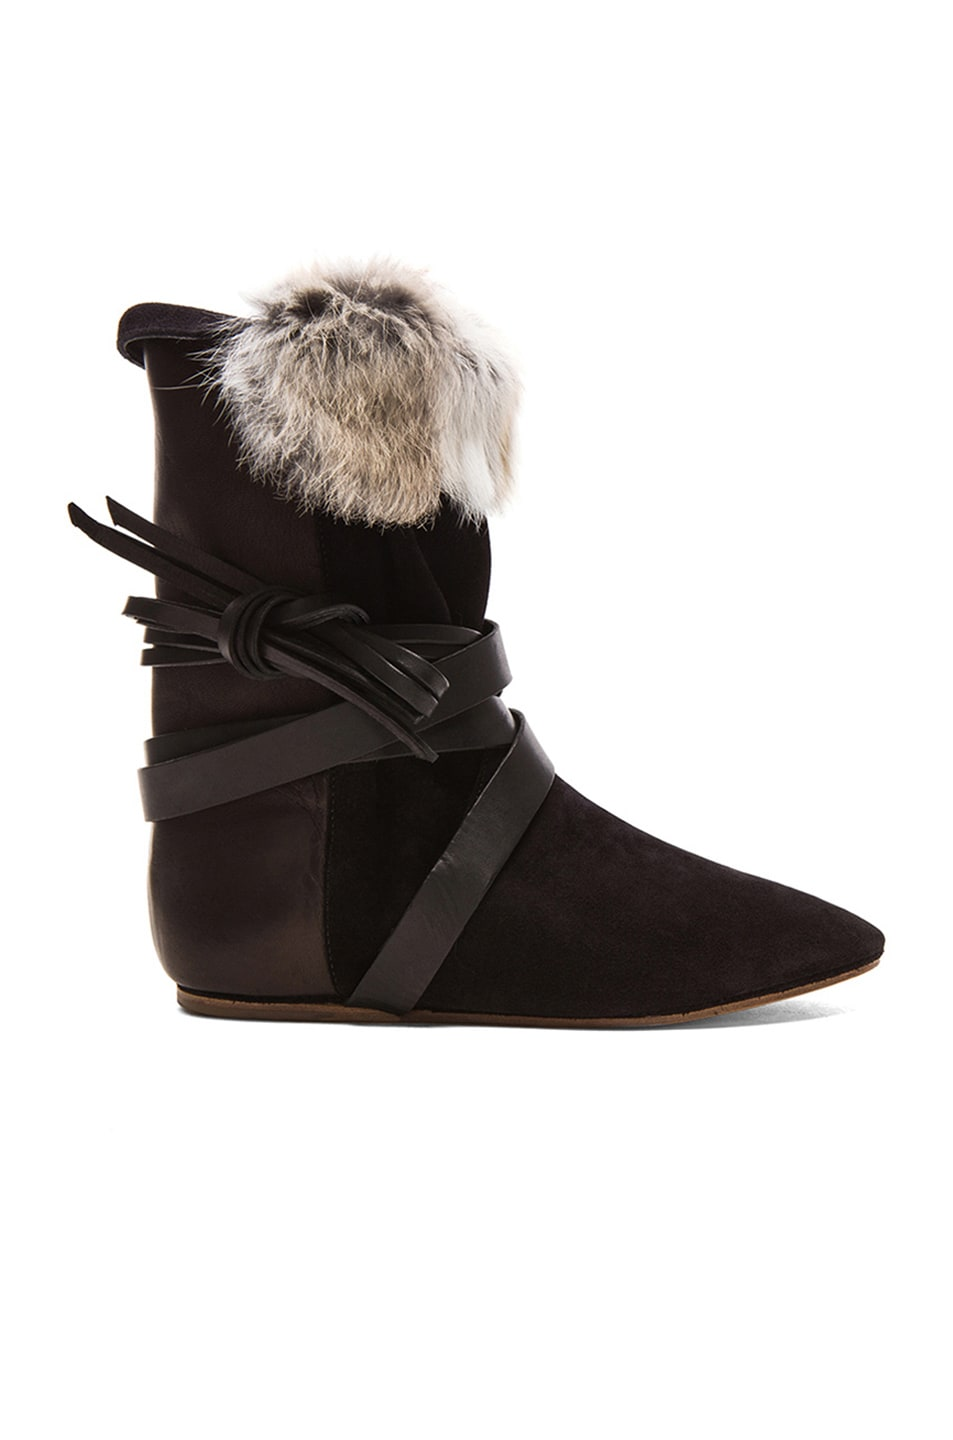 Image 1 of Isabel Marant Nia Couture Calfskin Velvet Leather Boots with Fur in Black